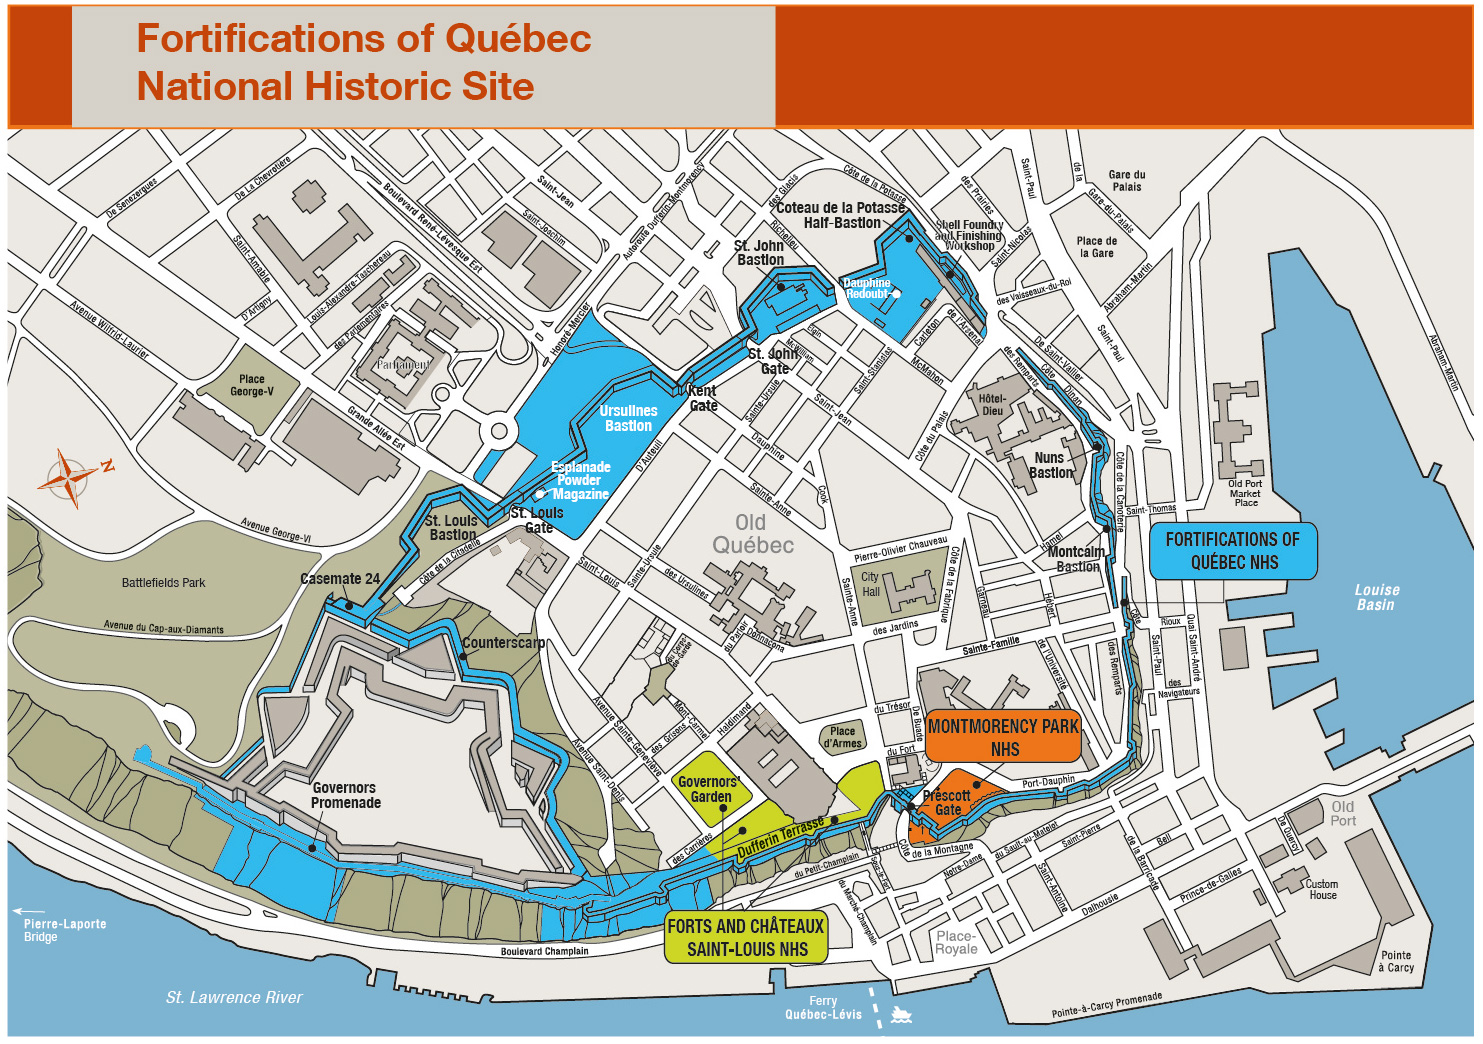 Fortifications of Québec National Historic Site of Canada ... on cambridge tour map, montreal quebec map, granby quebec map, dublin tour map, edinburgh tour map, civitavecchia tour map, paris tour map, haifa tour map, gatineau quebec map, vieux quebec map, sydney tour map, new york tour map, california tour map, reykjavik tour map, miami tour map, tokyo tour map, canada tour map, old montreal walking tour map, cairo tour map, bangkok tour map,